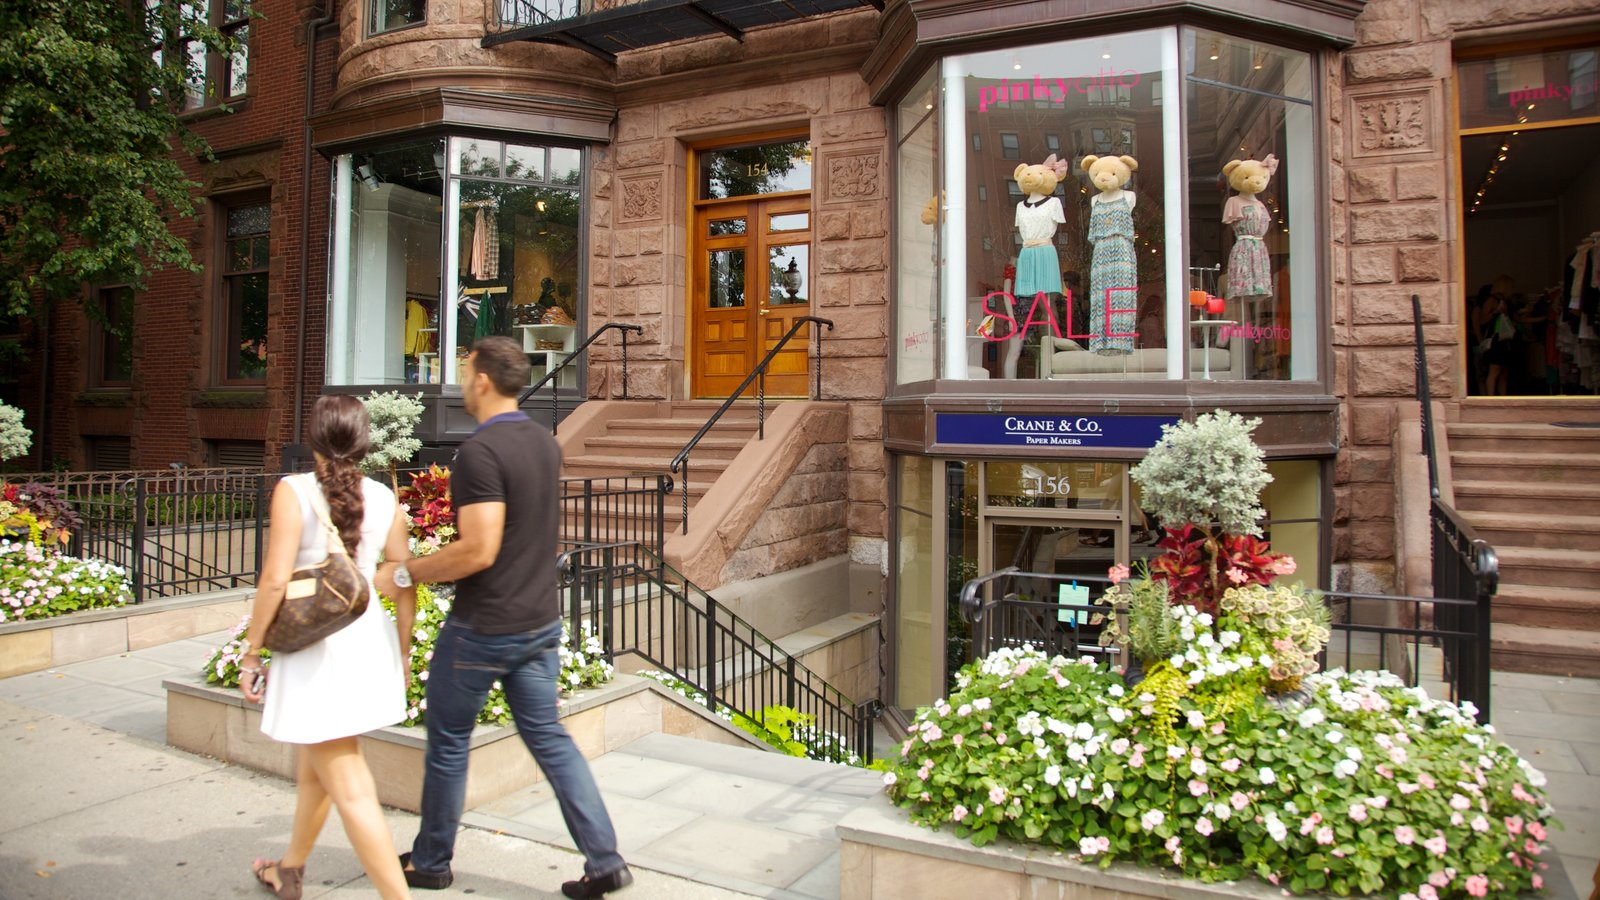 Newbury Street featuring wildflowers as well as a couple